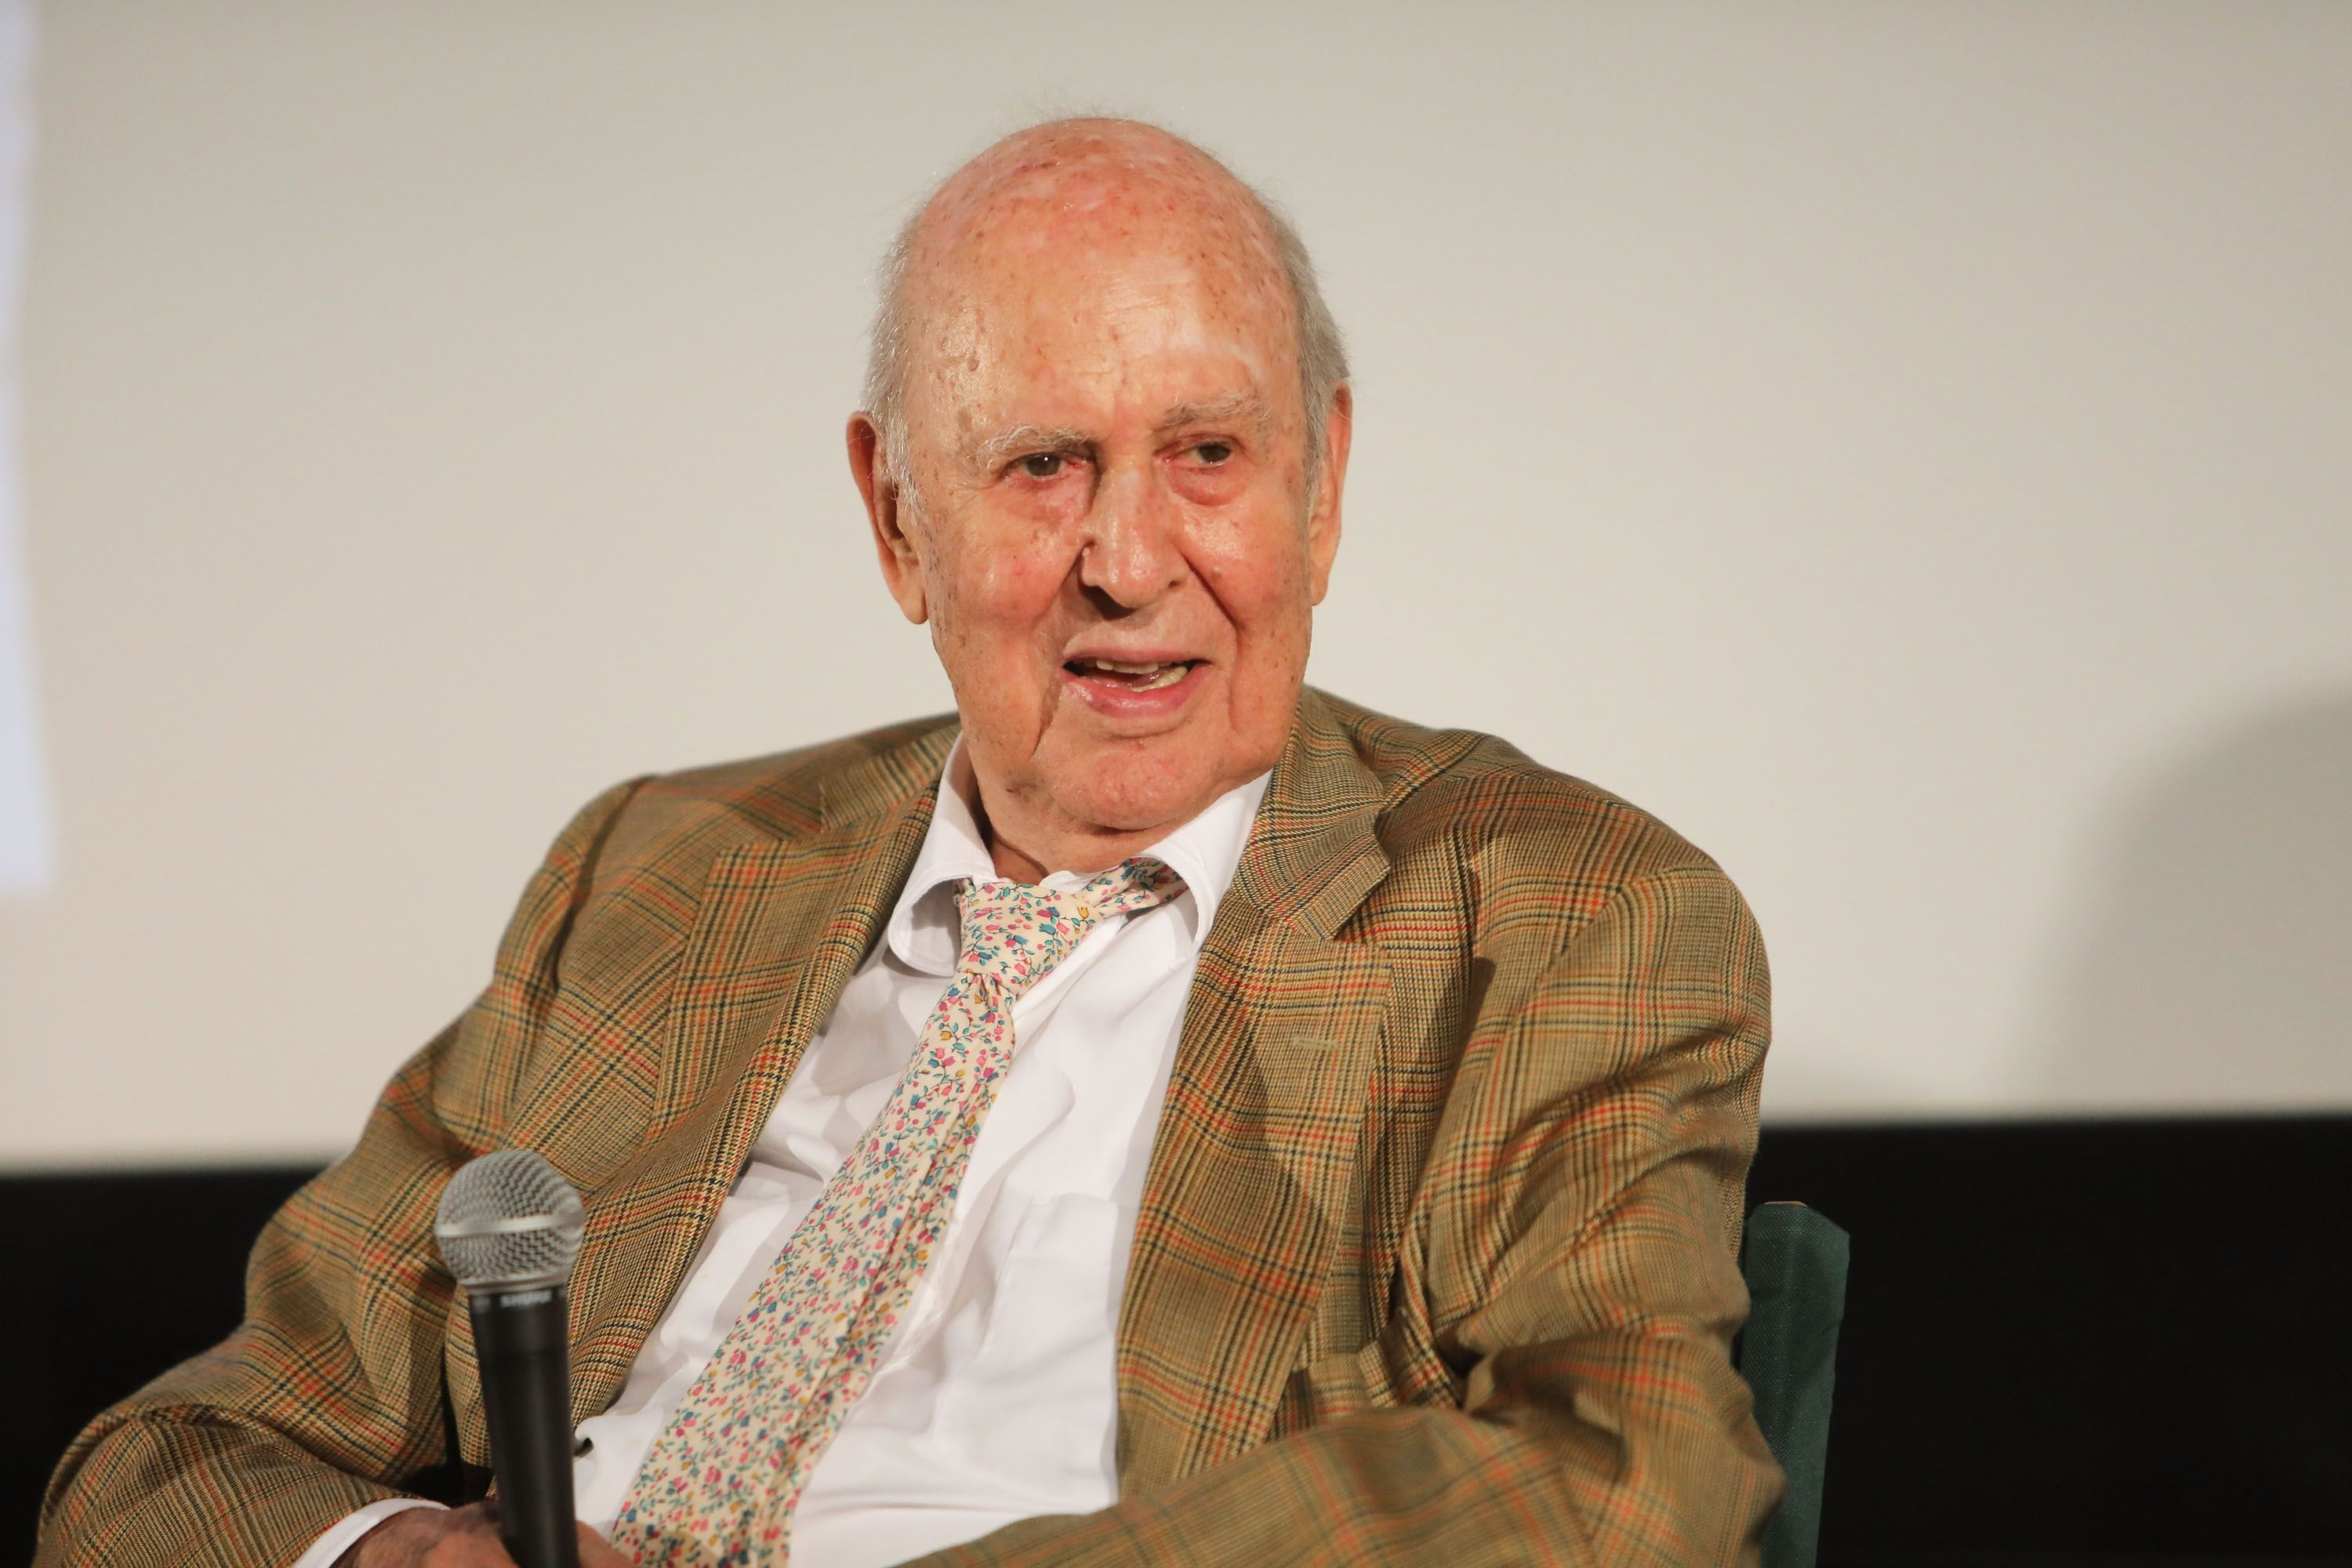 Carl Reiner au Théâtre Aero le 3 août 2017 à Santa Monica, Californie. | Photo : Getty Images